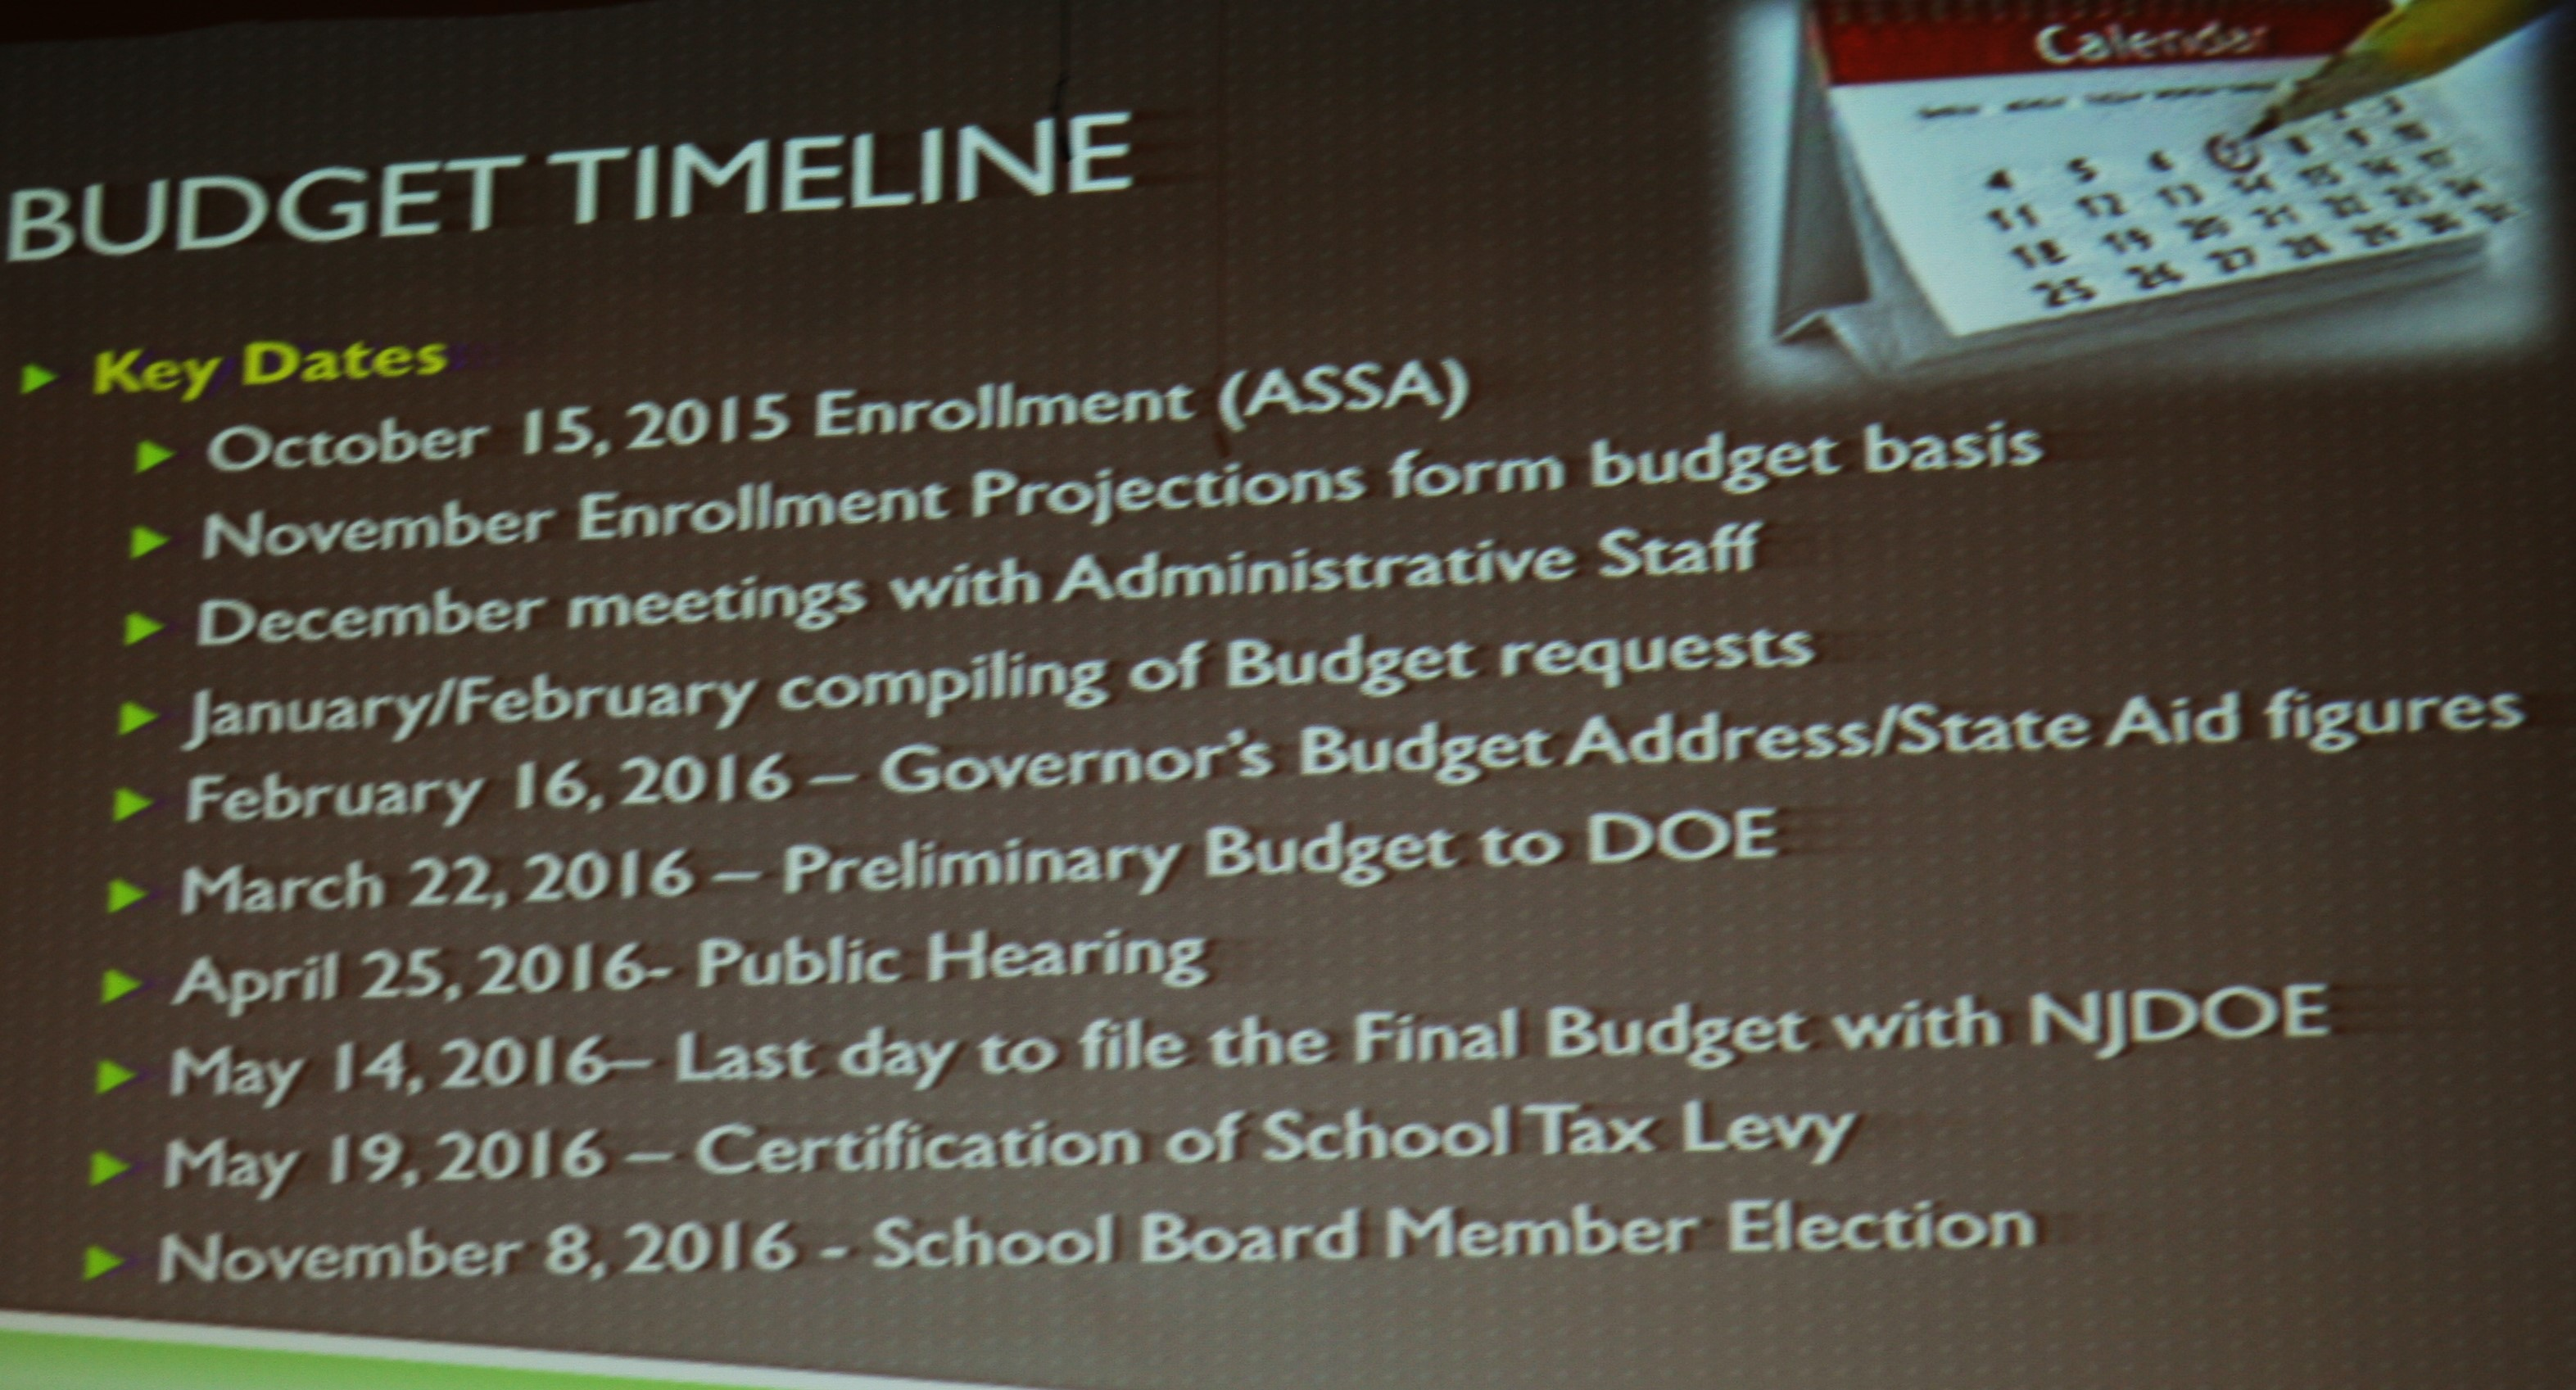 South Brunswick Boe Adopts 1437m Budget With 6 Cent Tax Increase